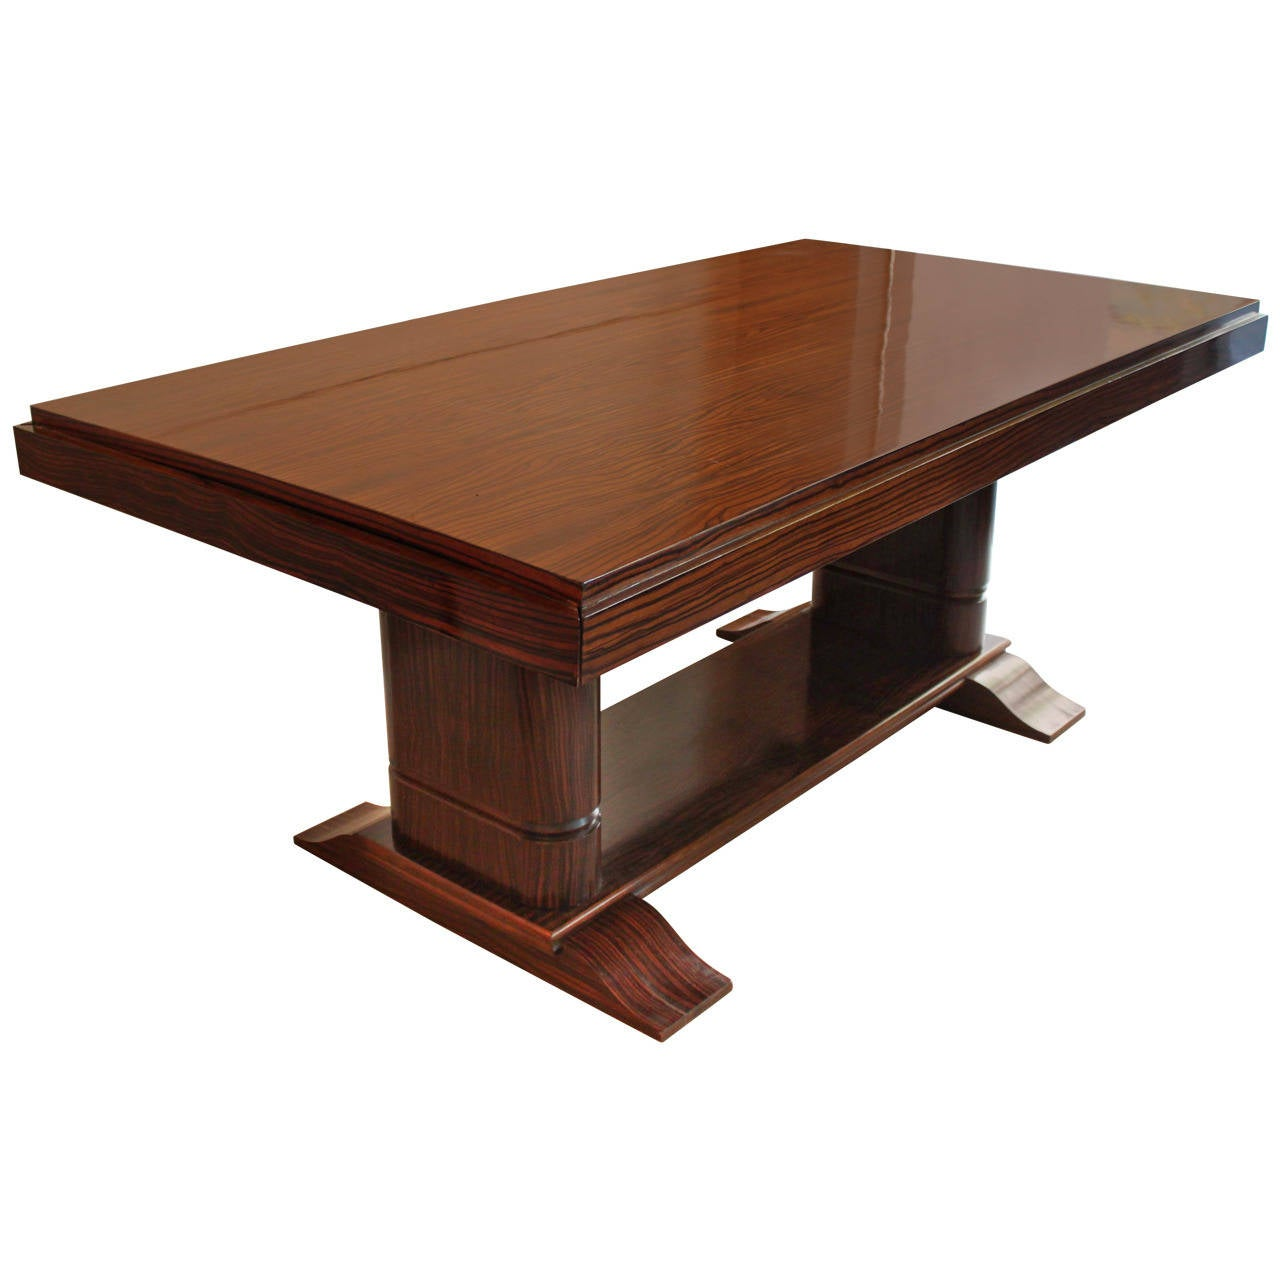 Rosewood Art Deco Dining Table At 1stdibs